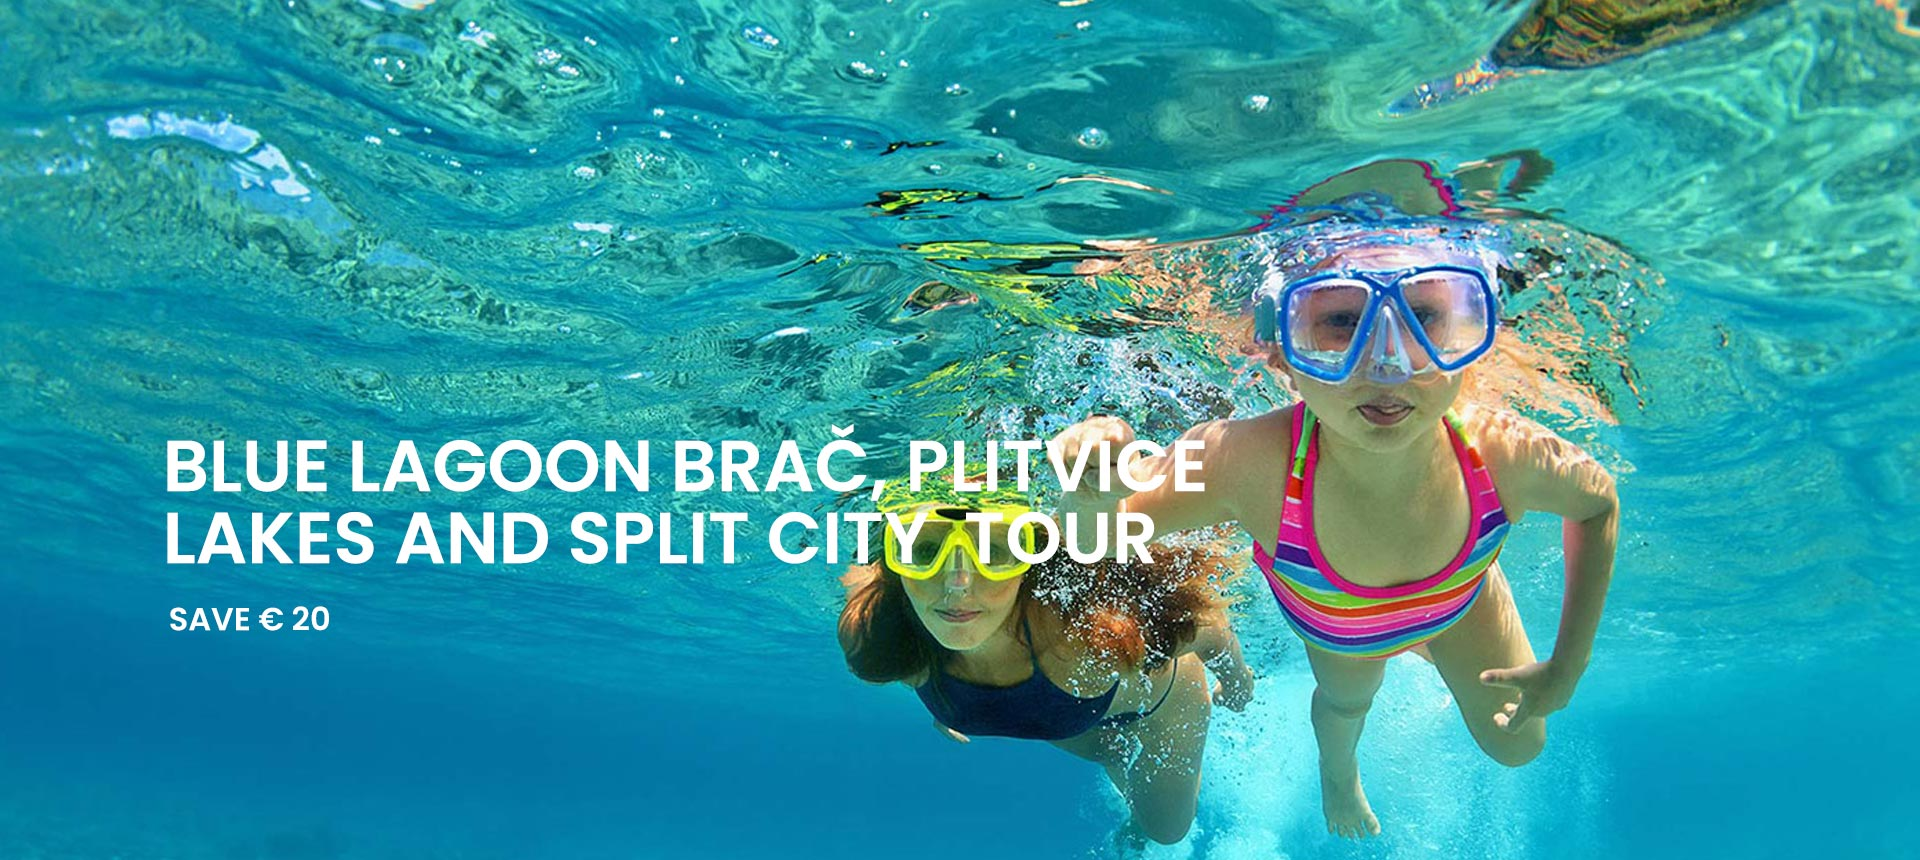 Super Combo Tour: Blue lagoon Brač, Plitvice lakes and Split city tour